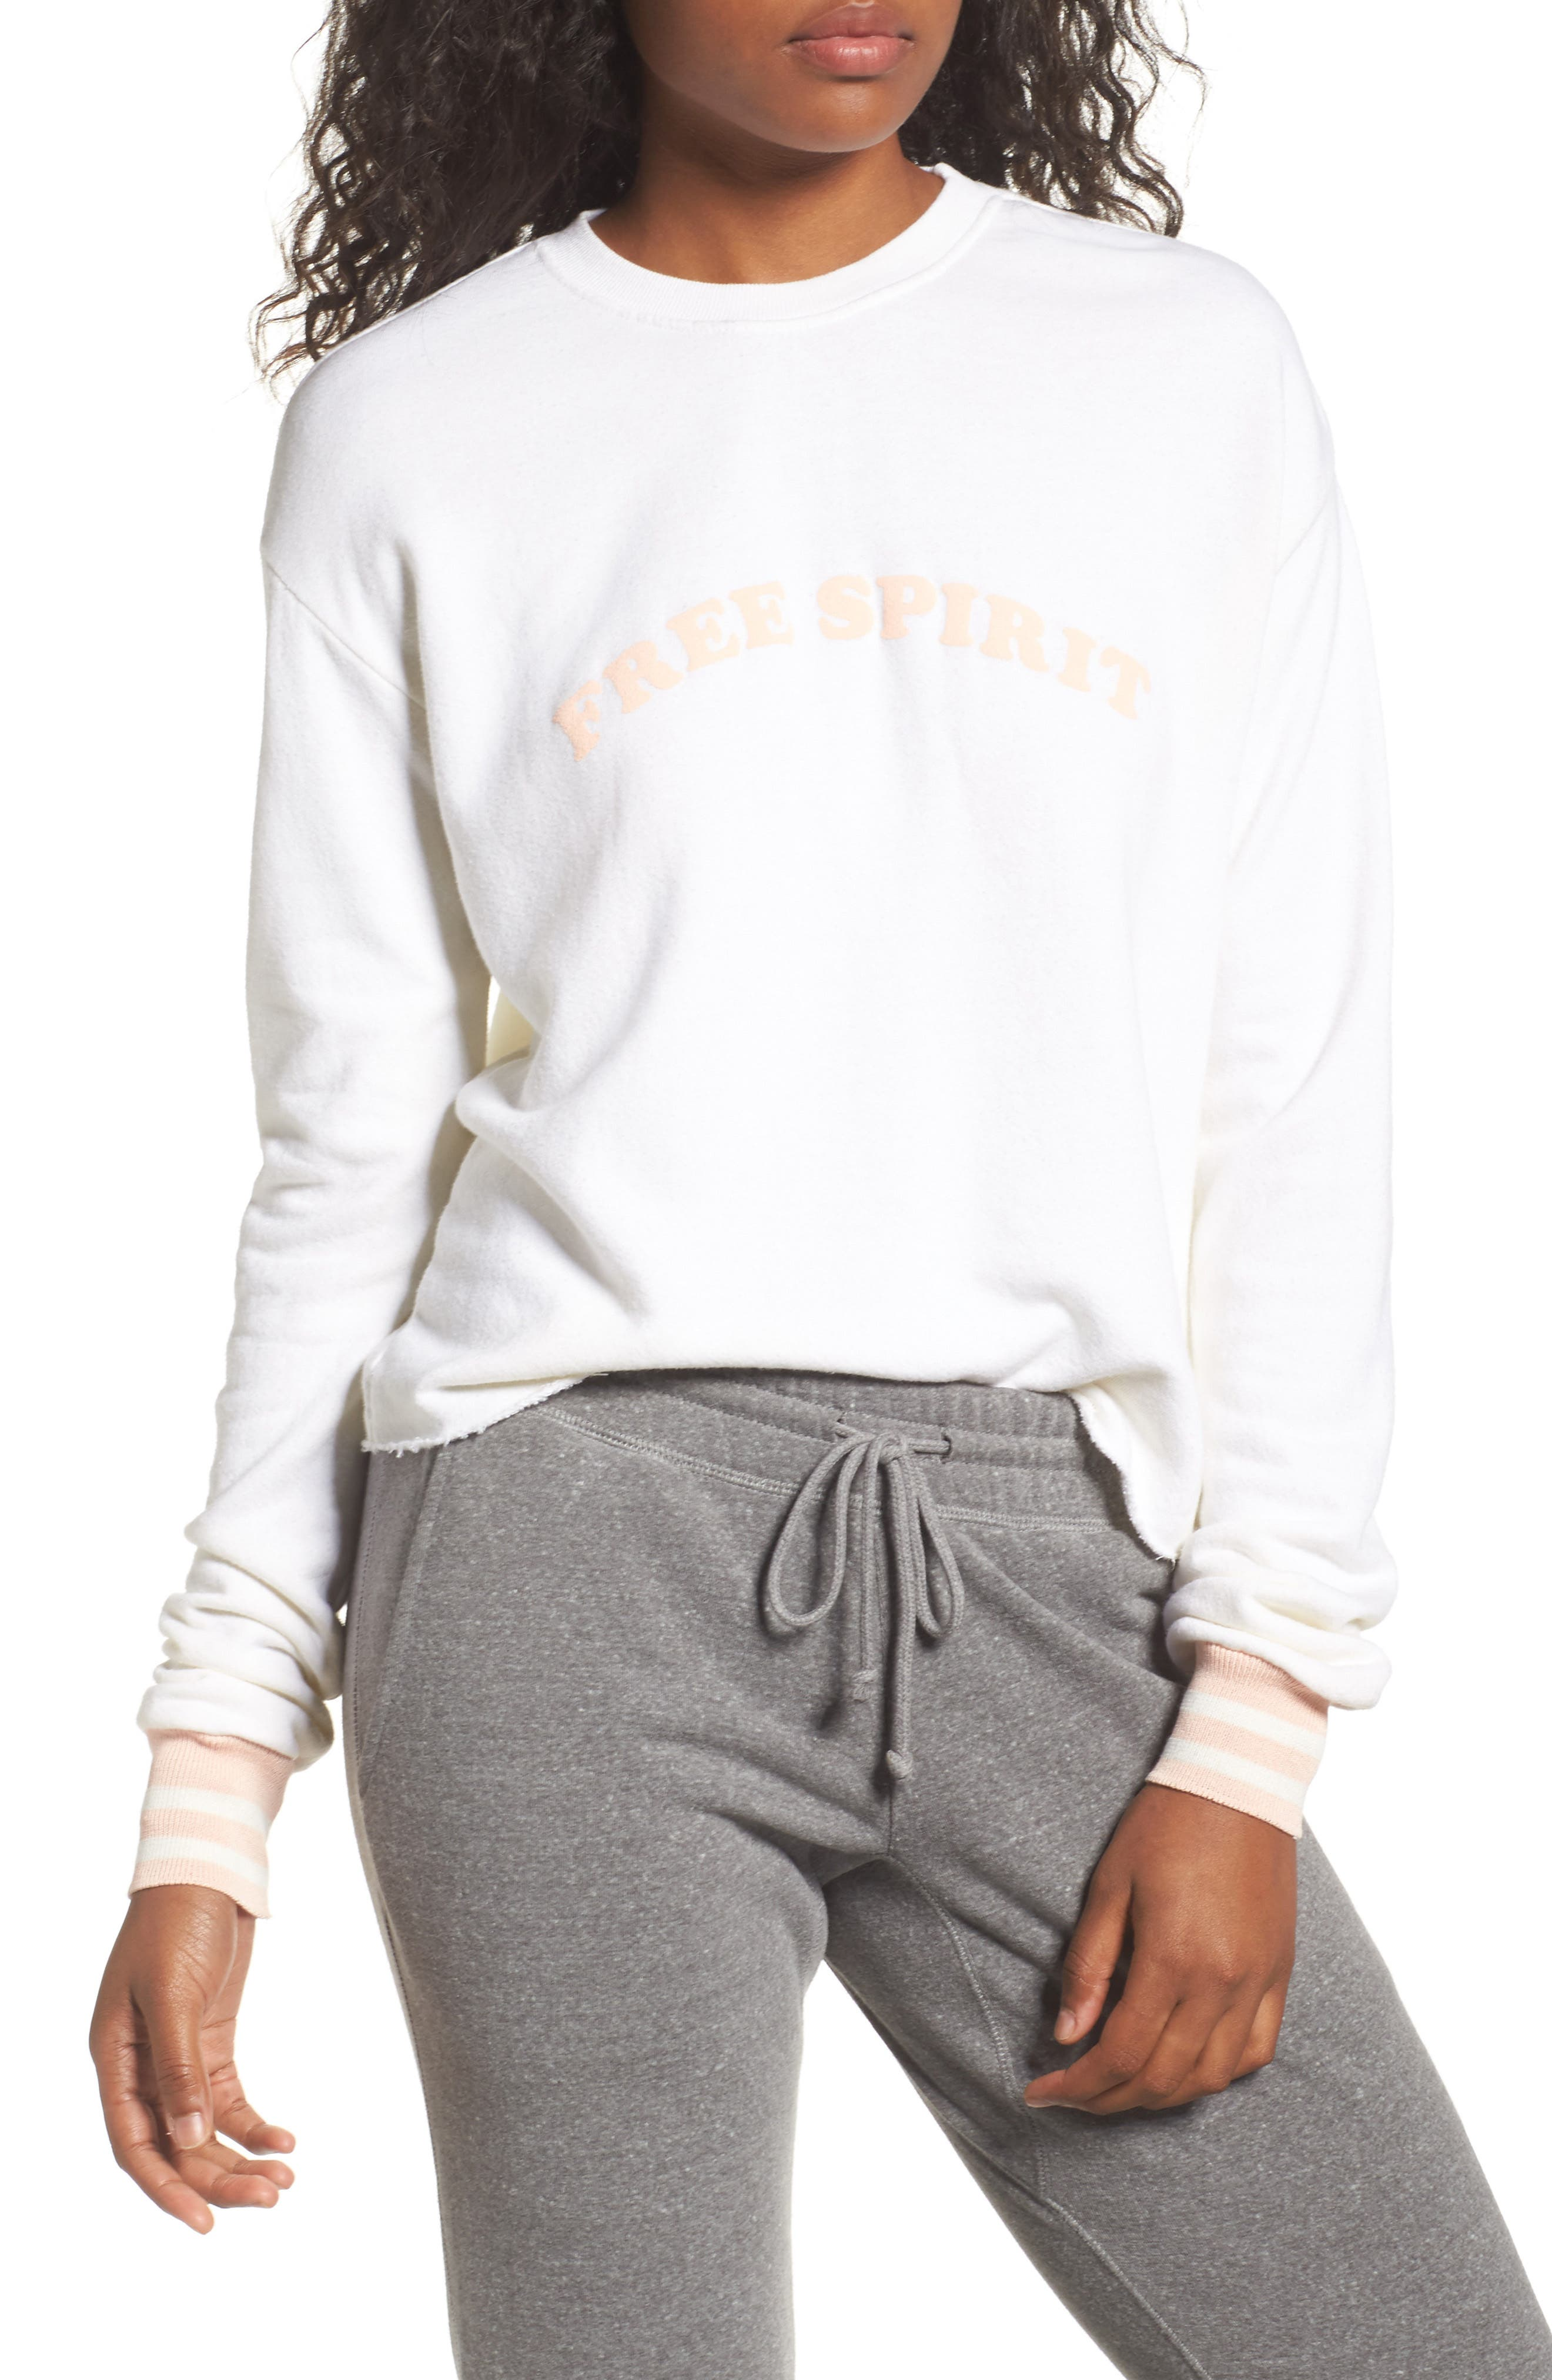 Free Spirit Crop Sweatshirt,                         Main,                         color, Stardust